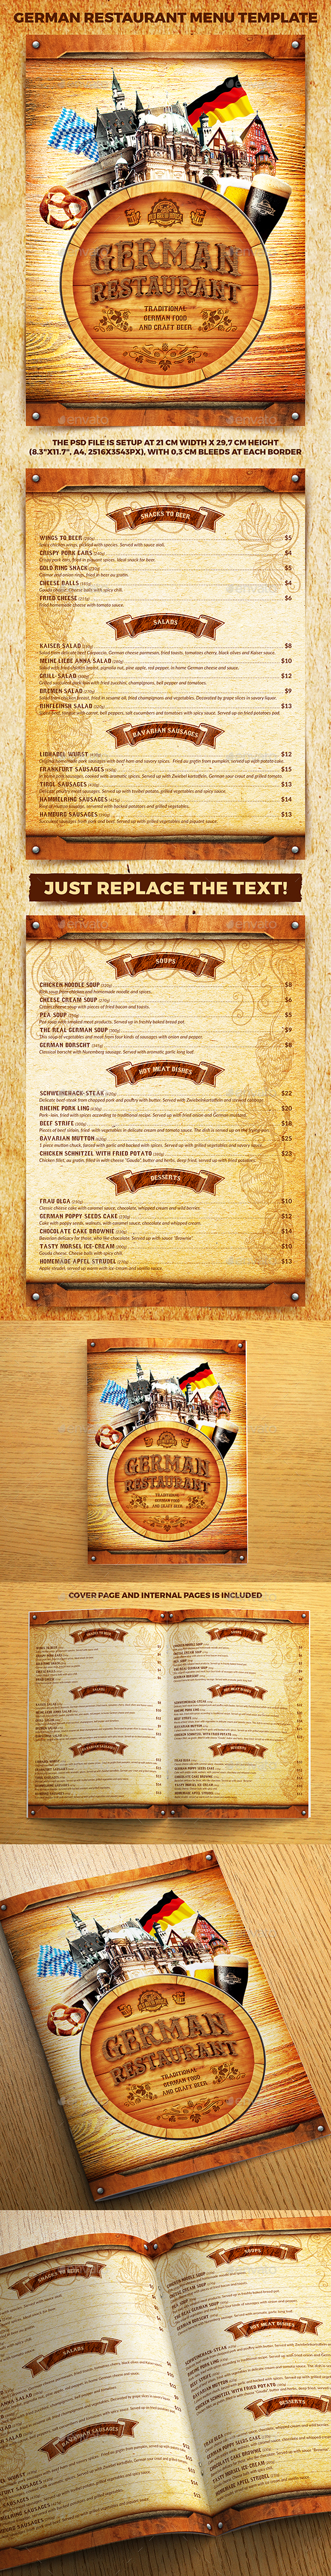 German Restaurant Menu Template